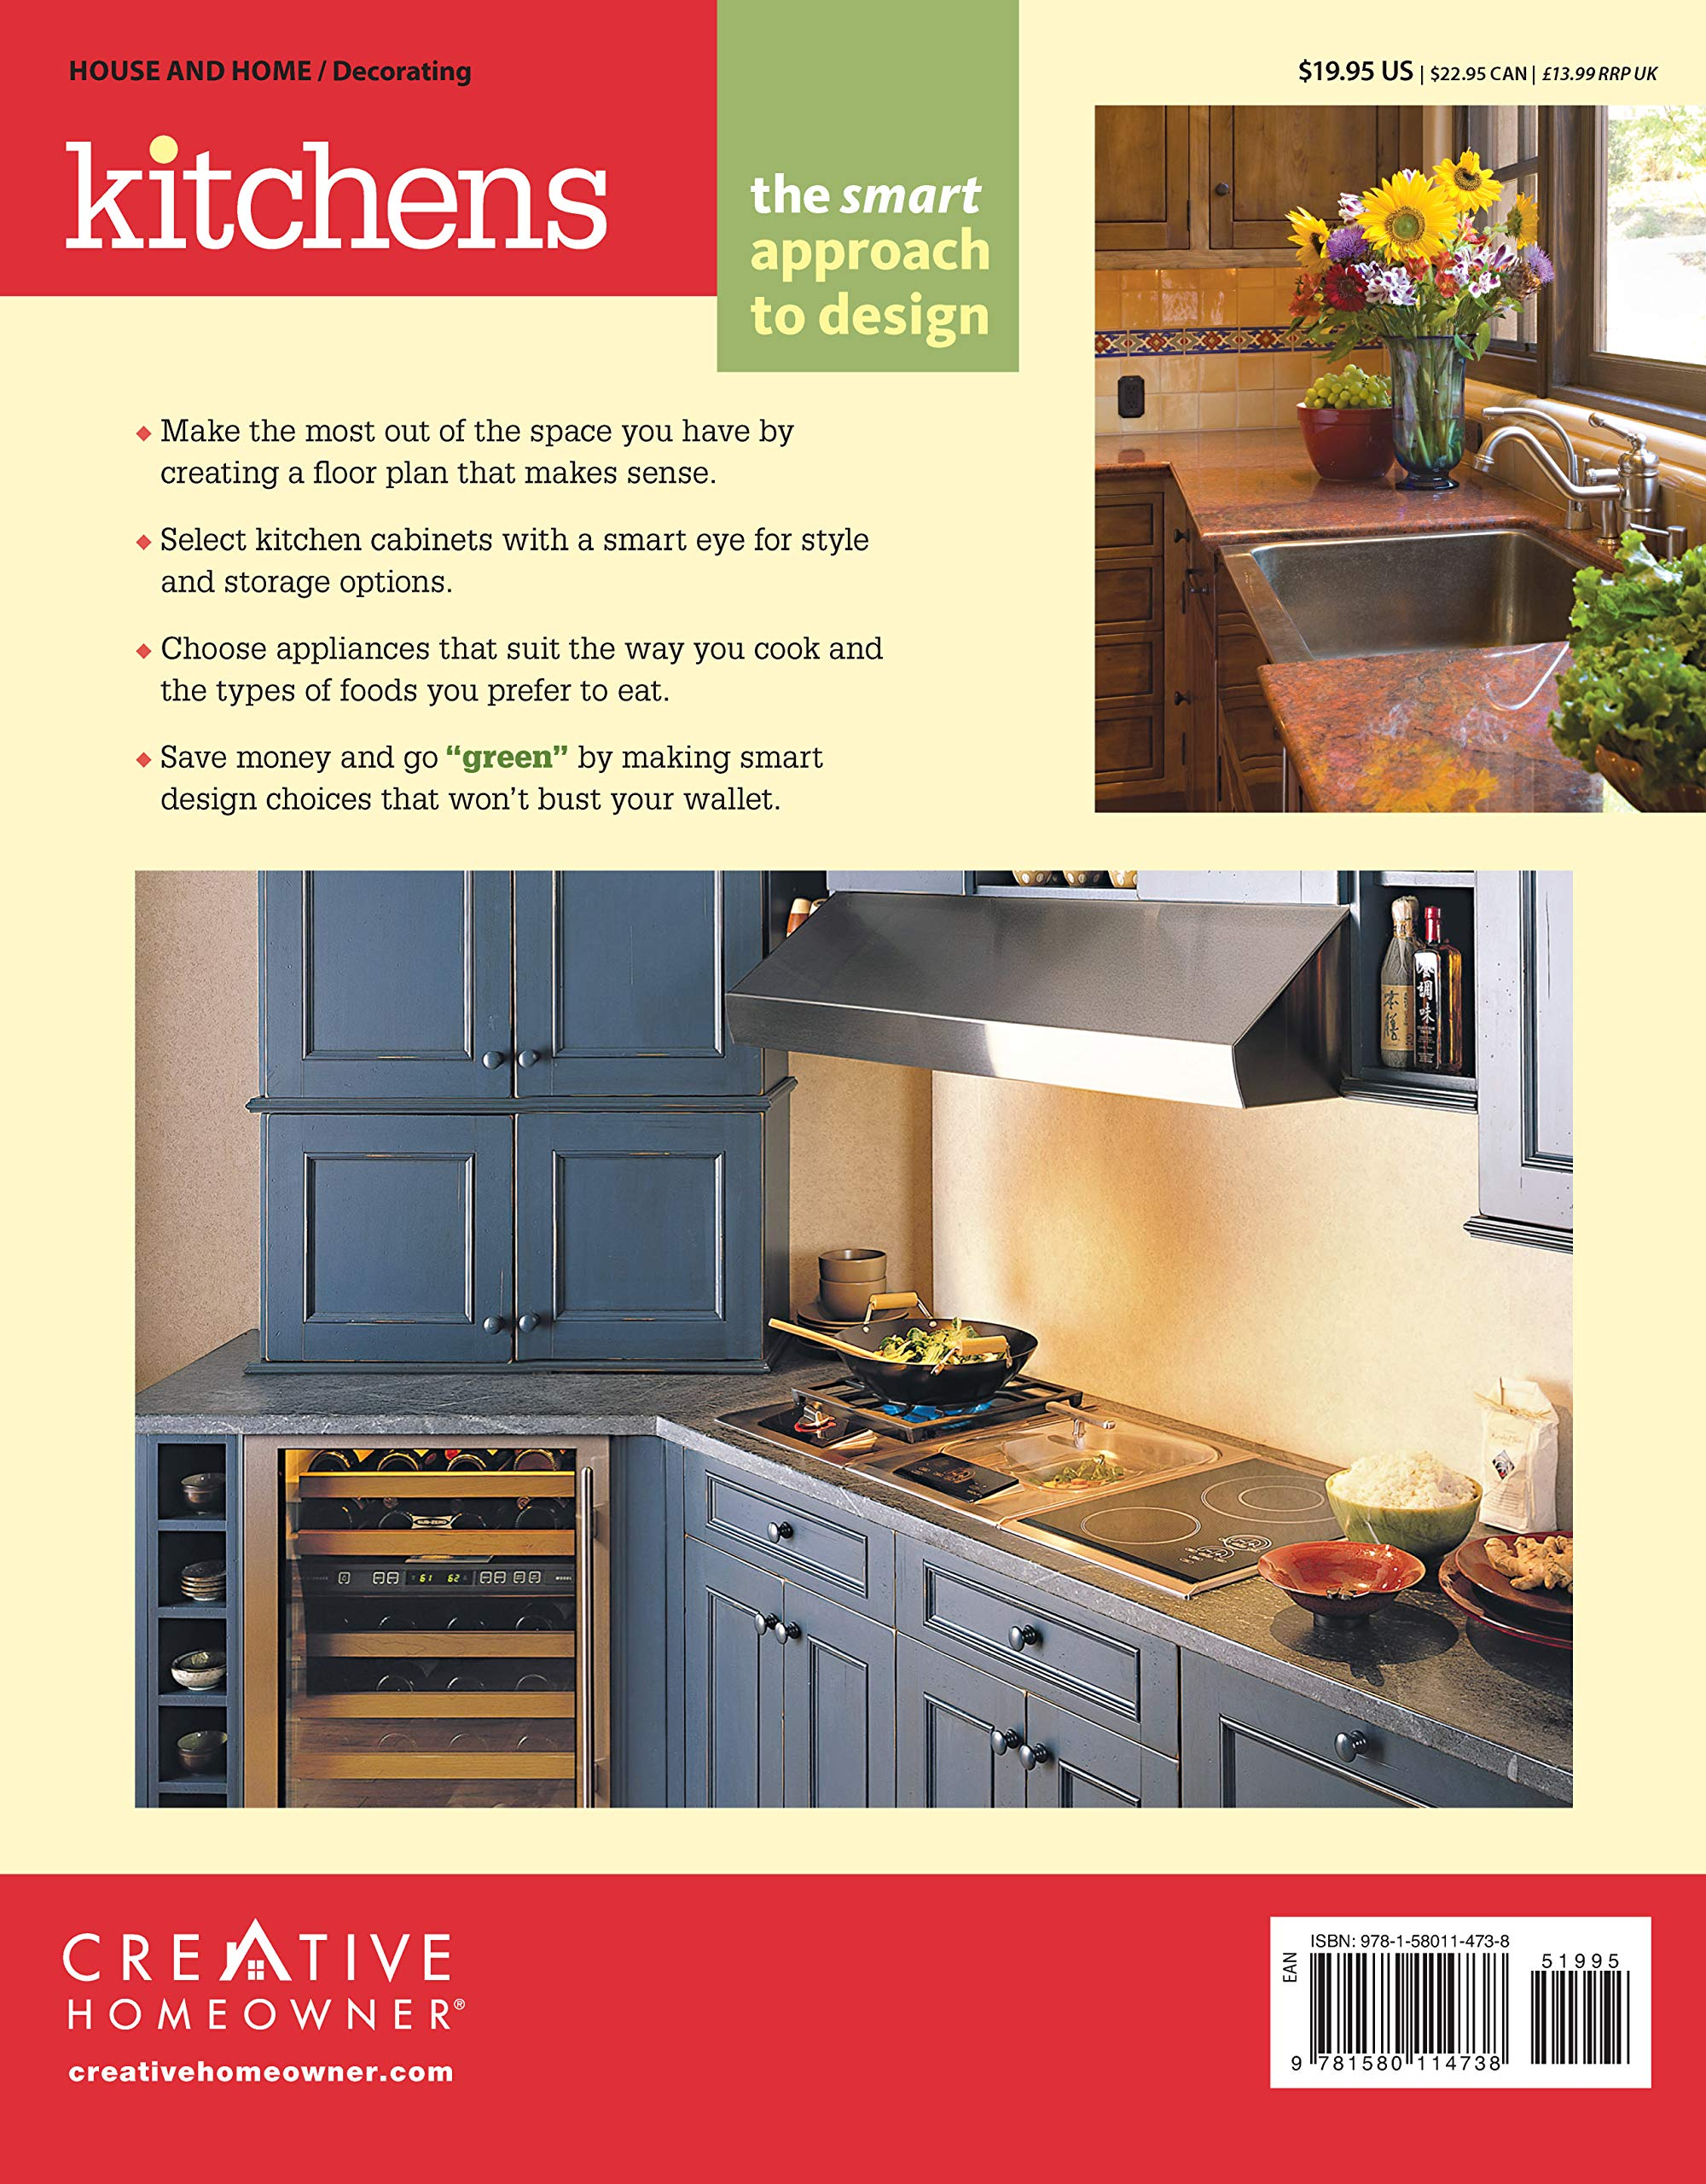 Kitchens The Smart Approach To Design Creative Homeowner More Than Just An Idea Book Plan Customize Save Home Decorating Editors Of Creative Homeowner Home Decorating Kitchen How To 0078585114733 Amazon Com Books